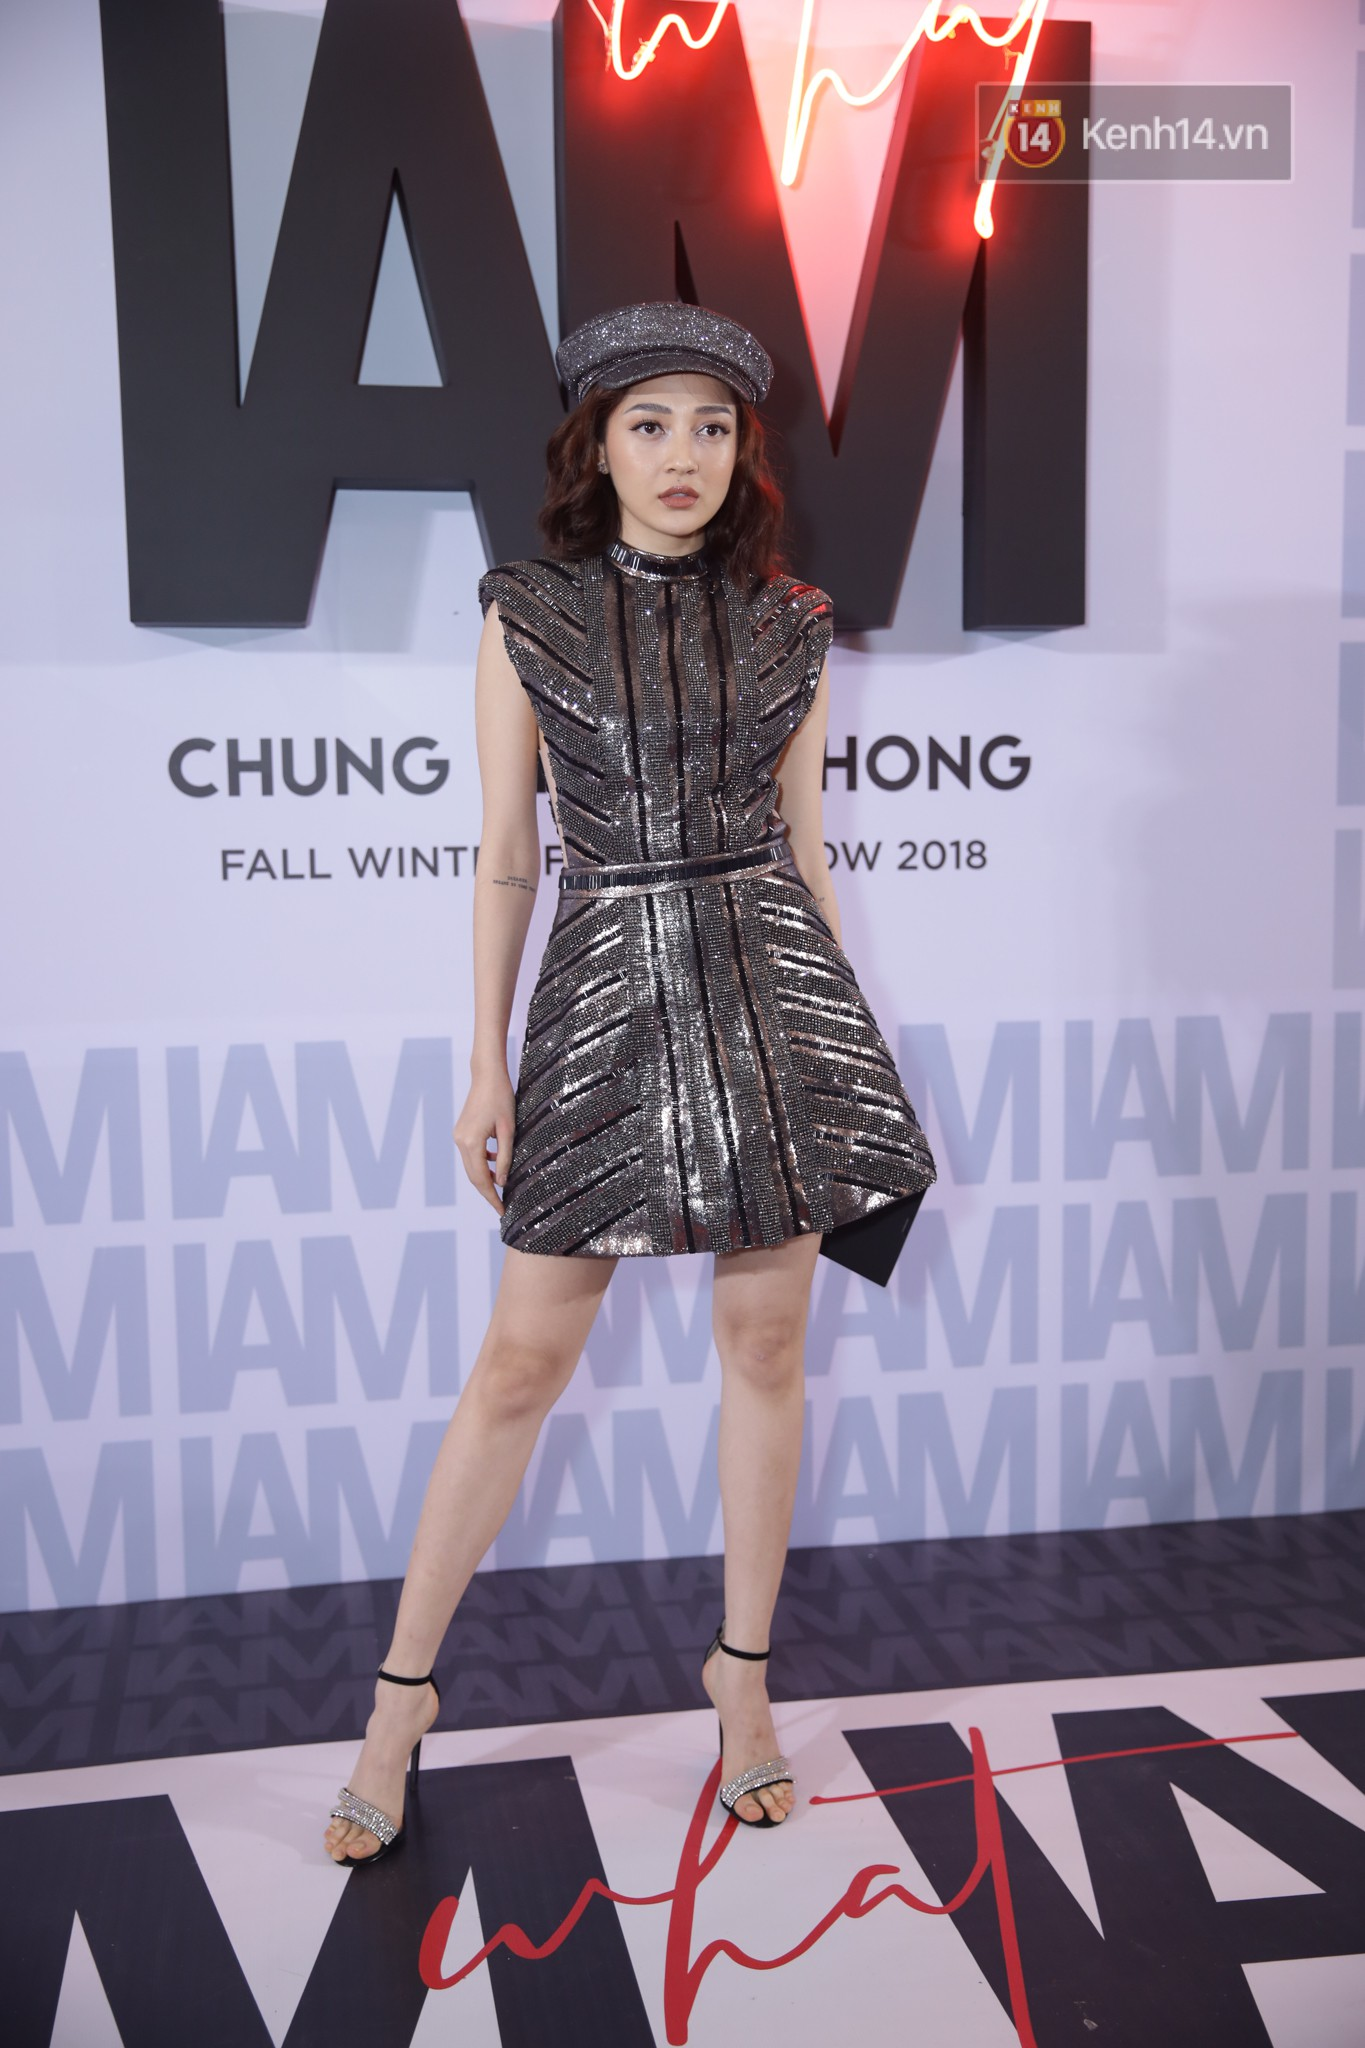 The red carpet Chung Thanh Phong show: it was able to test strange styles, as Quỳnh Anh Shyn caught birds with rain - Photo 27.